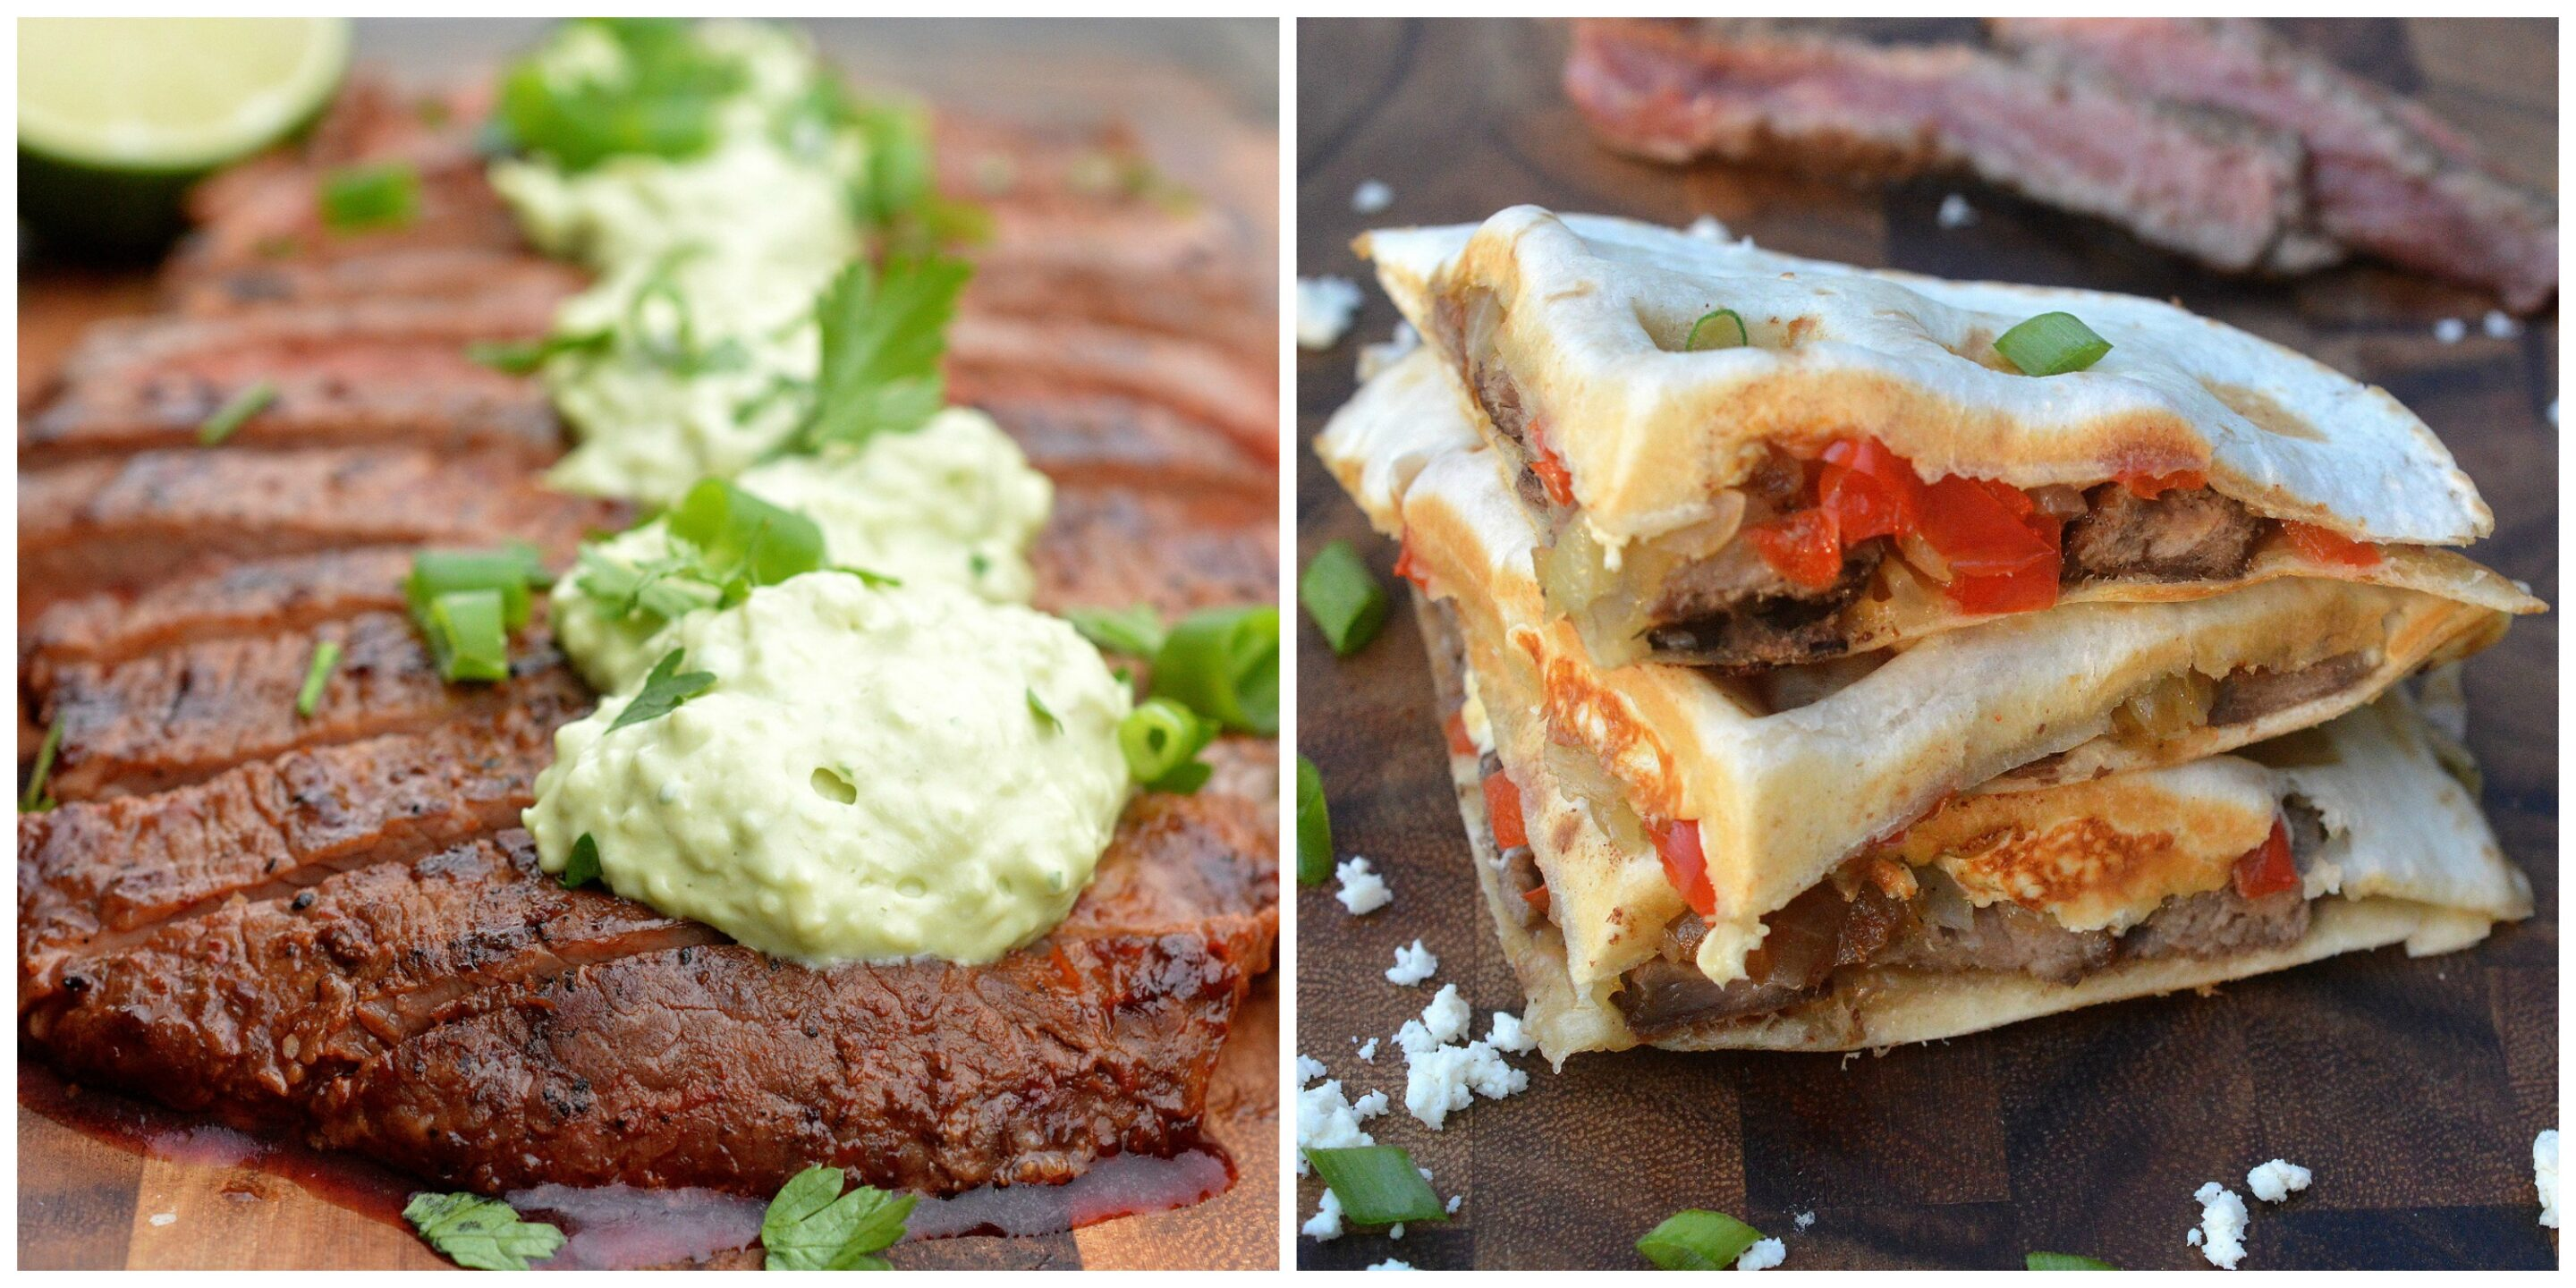 Grilled Chipotle Steak with Avocado Cream and Steak Quesadillas from Souffle Bombay